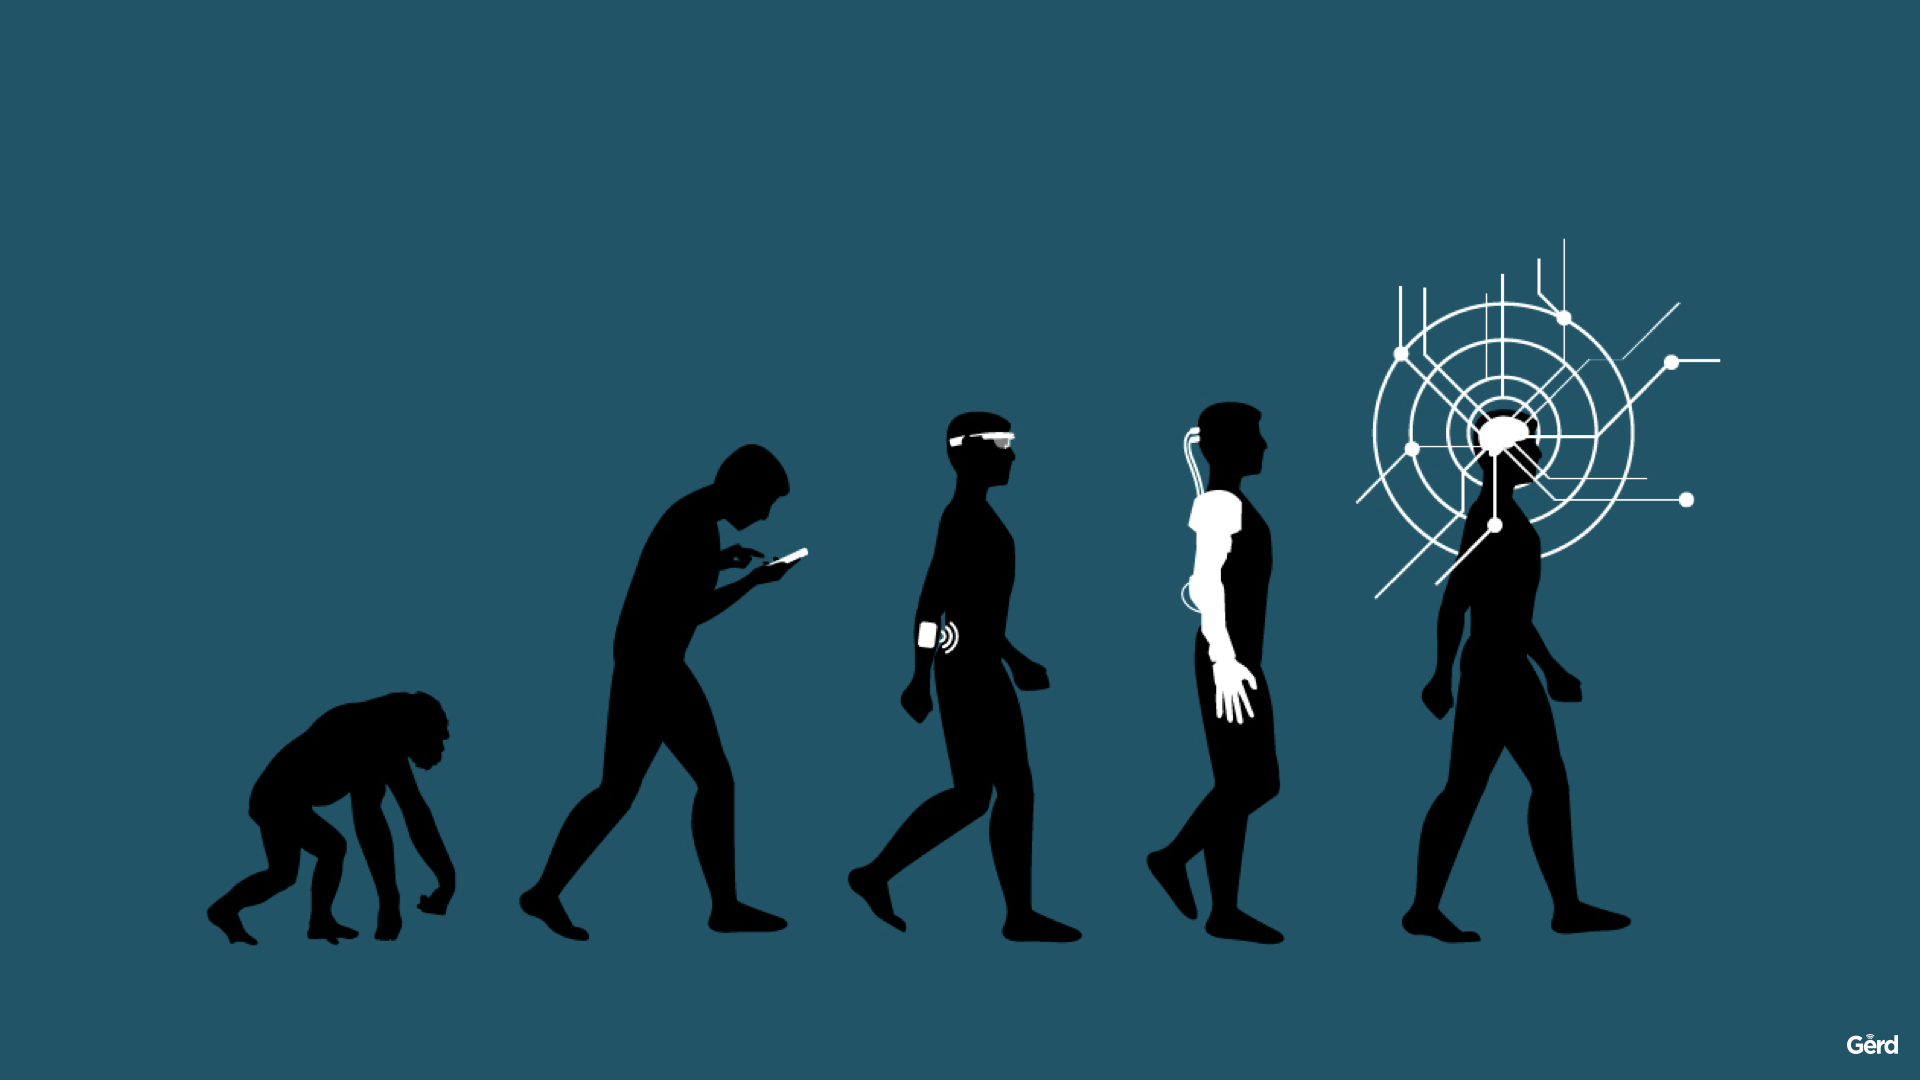 technology humanity obesity digital future gerd leonhard anorexia analogue welcome futurist expanded excerpt far take